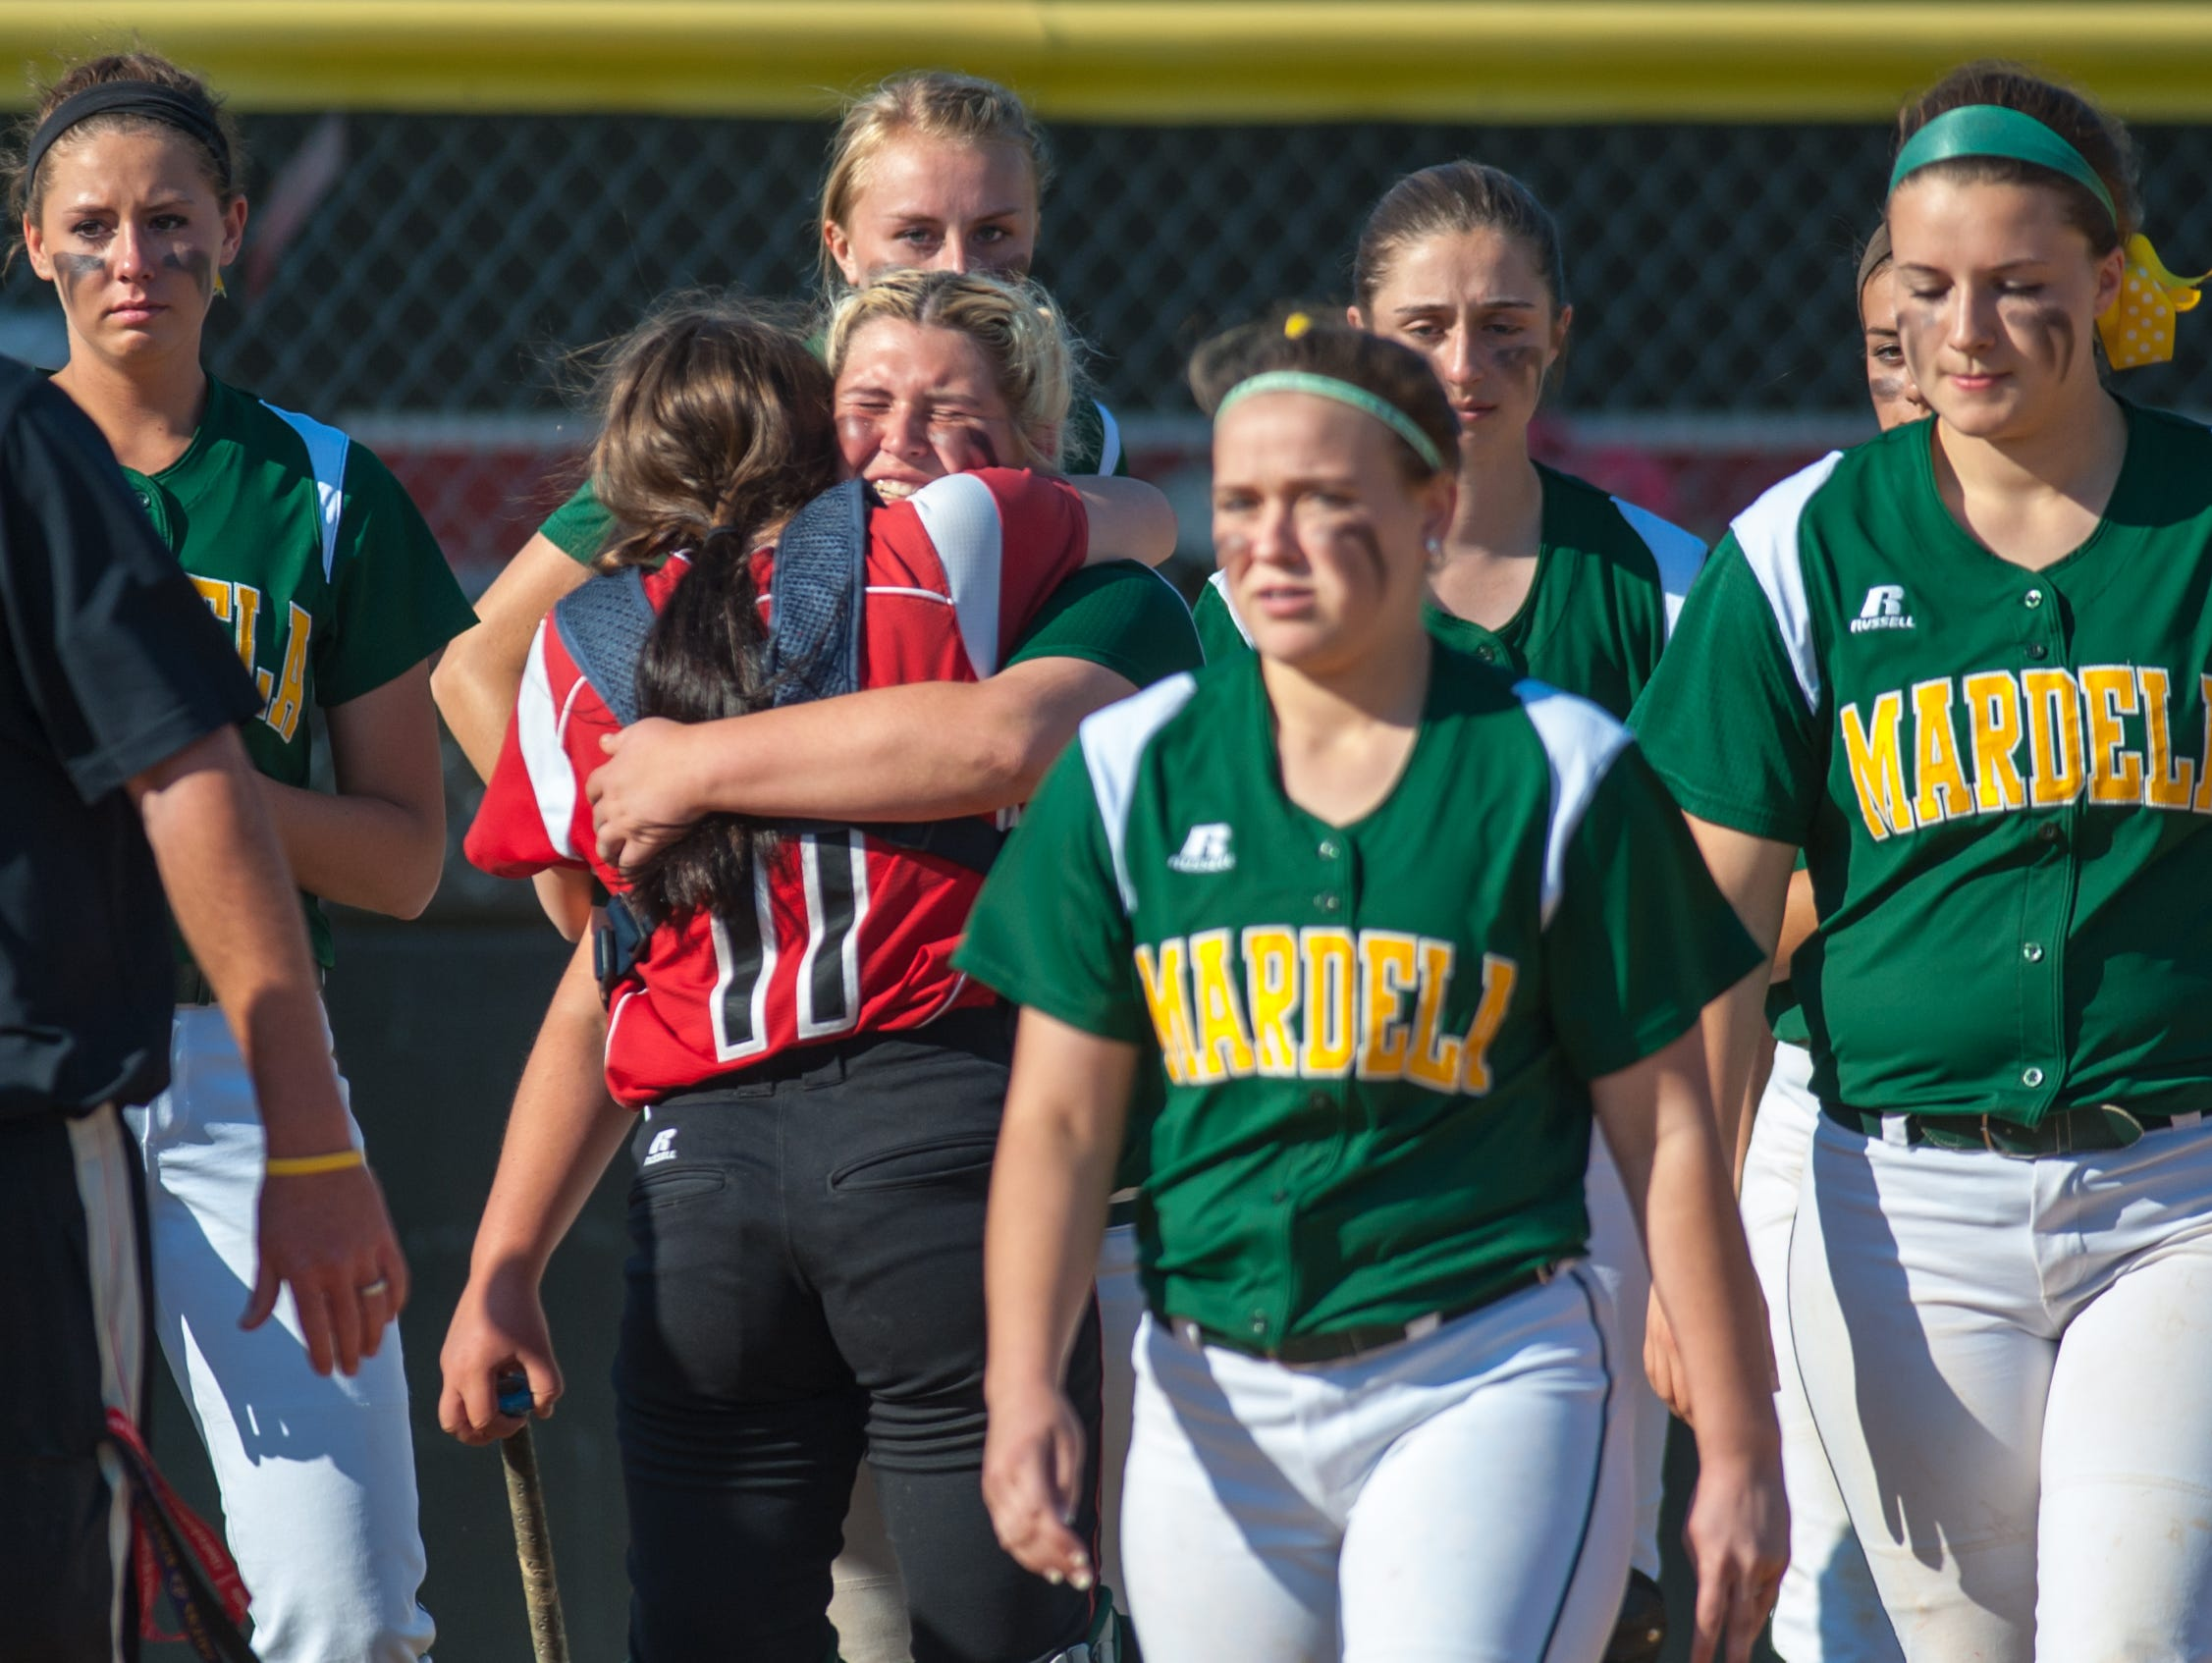 Mardela third baseman Kasey Goshorn (15) and Colonel RIchardson catcher Emily Cox (11) share a hug following the Warriors 2-1 loss in the MPSSAA 1A East Softball Region Finals on Friday afternoon in Federalsburg.